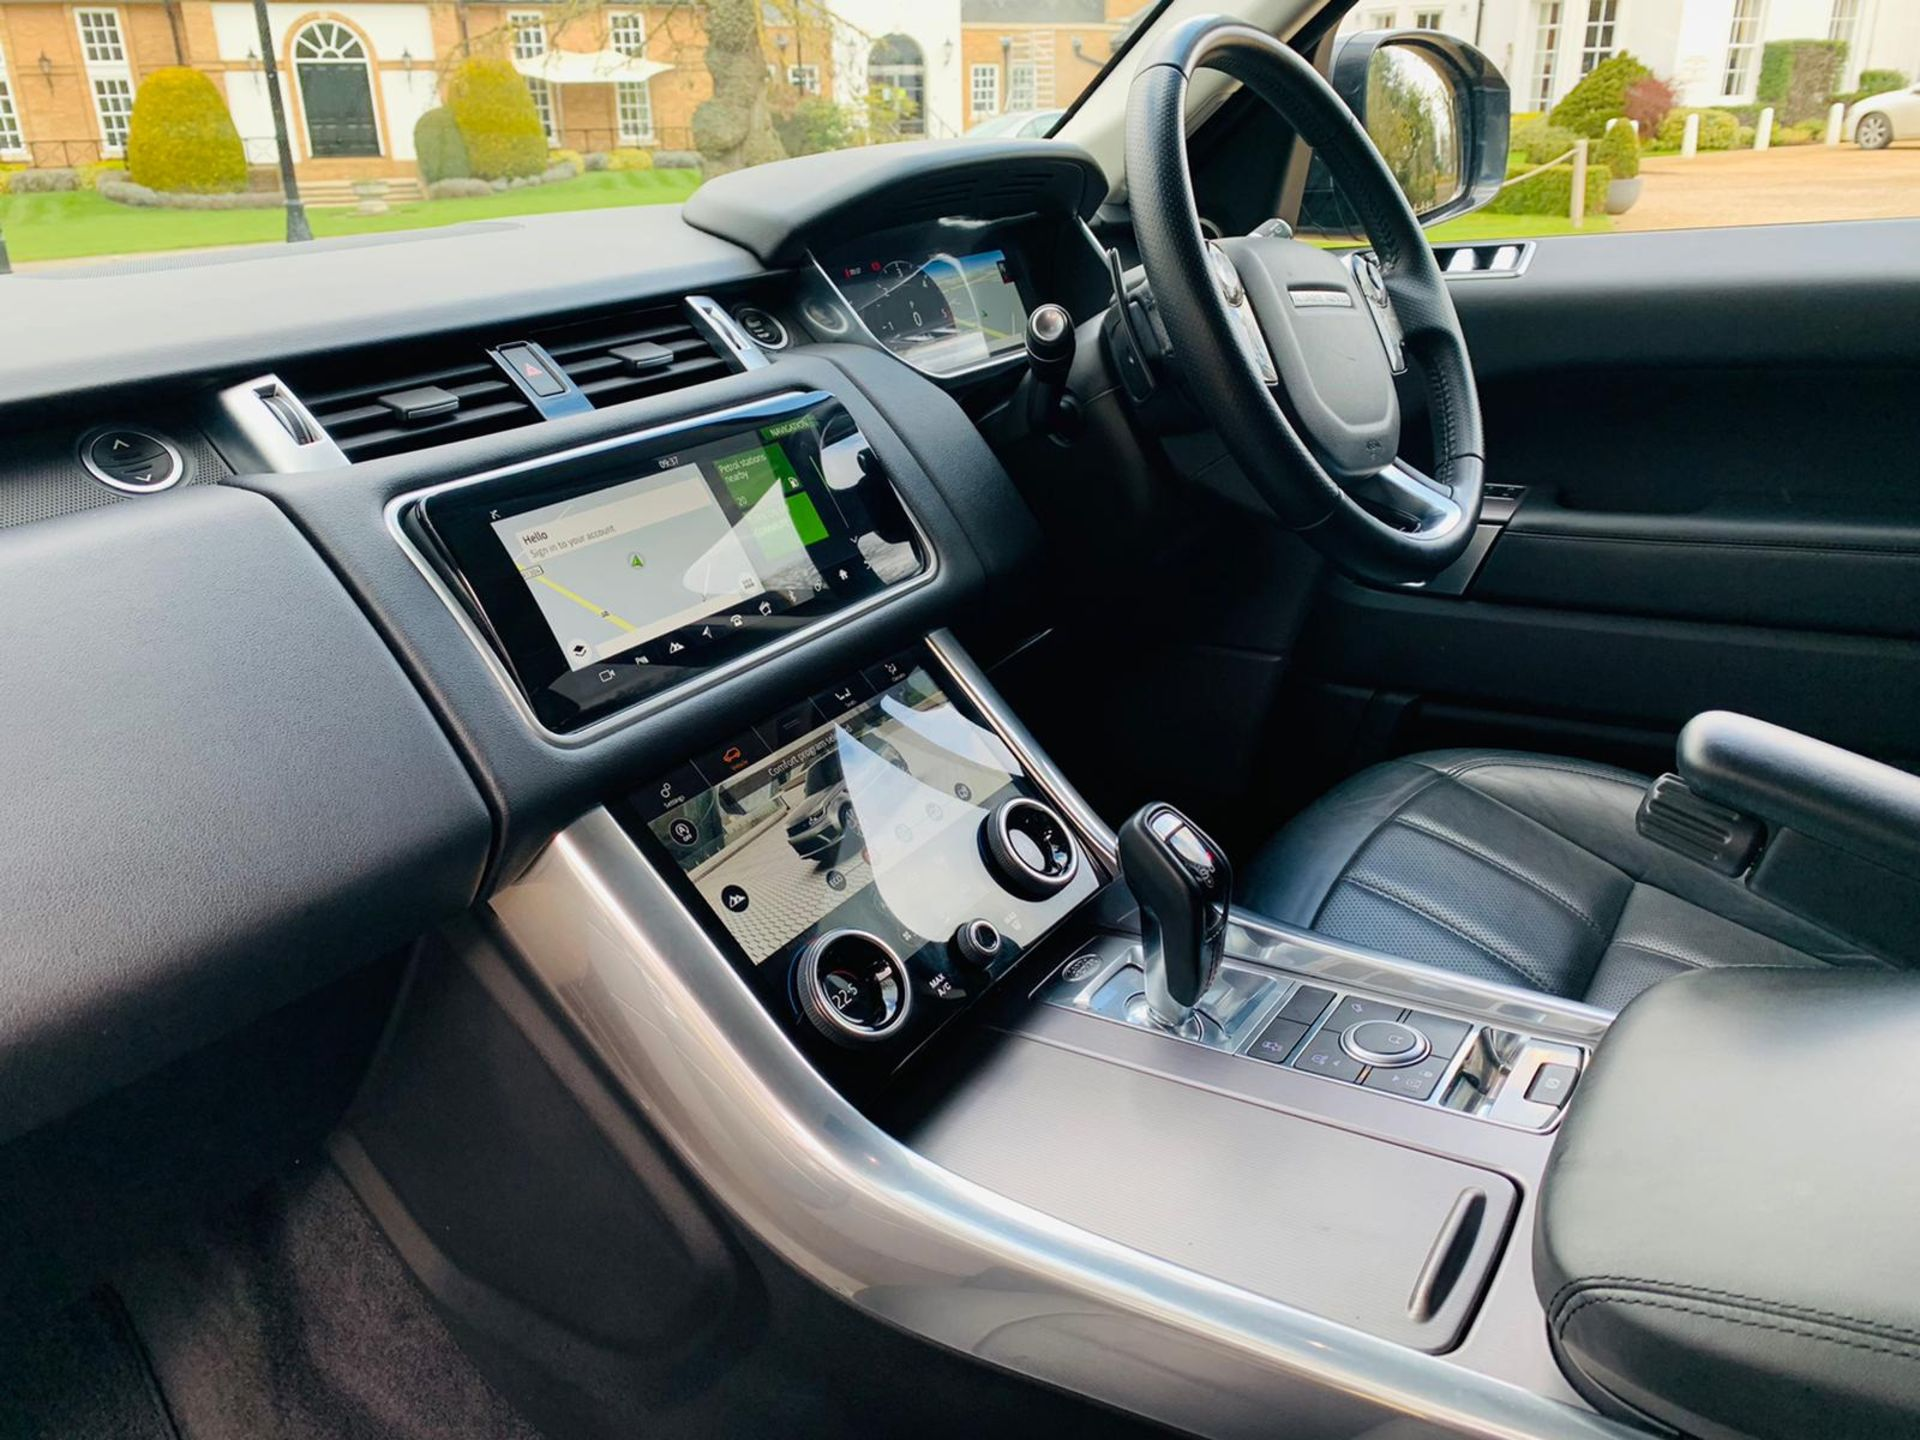 (RESERVE MET) Range Rover Sport 3.0 SDV6 HSE Auto - 2019 - 1 Keeper From New - Virtual Cockpit - - Image 23 of 42